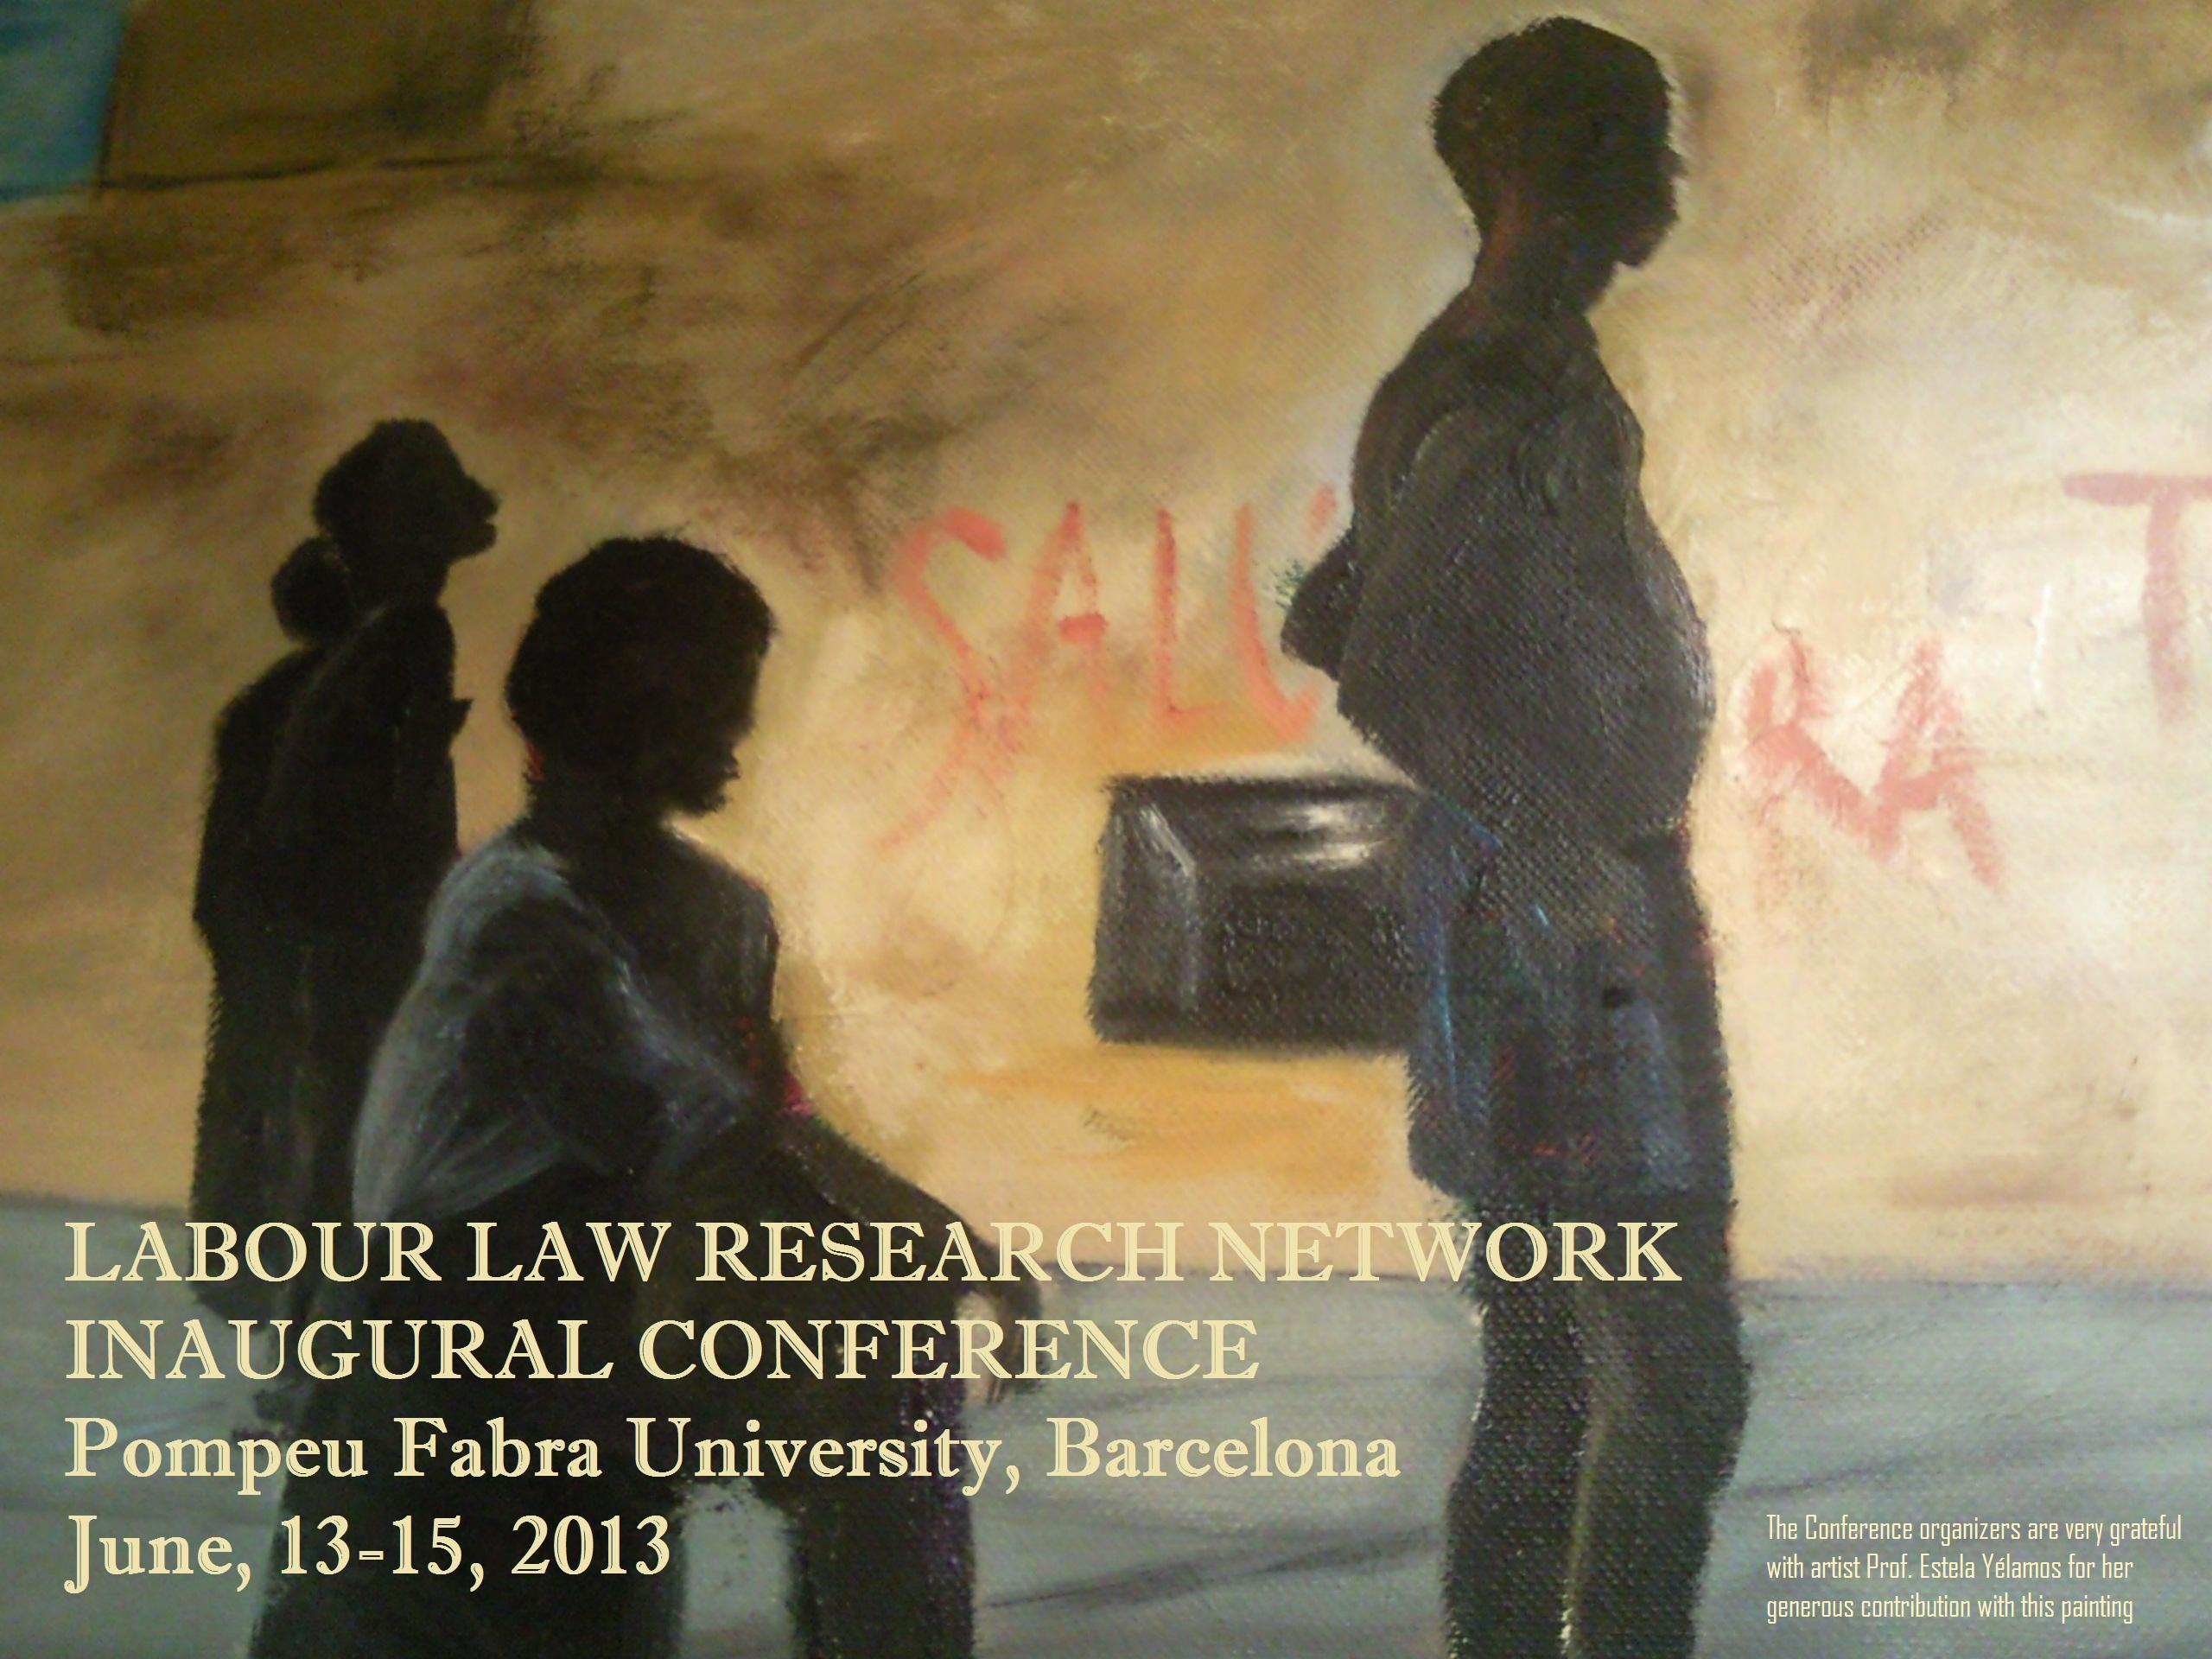 LLRN Inaugural Conference - UPF, Barcelona, 2013